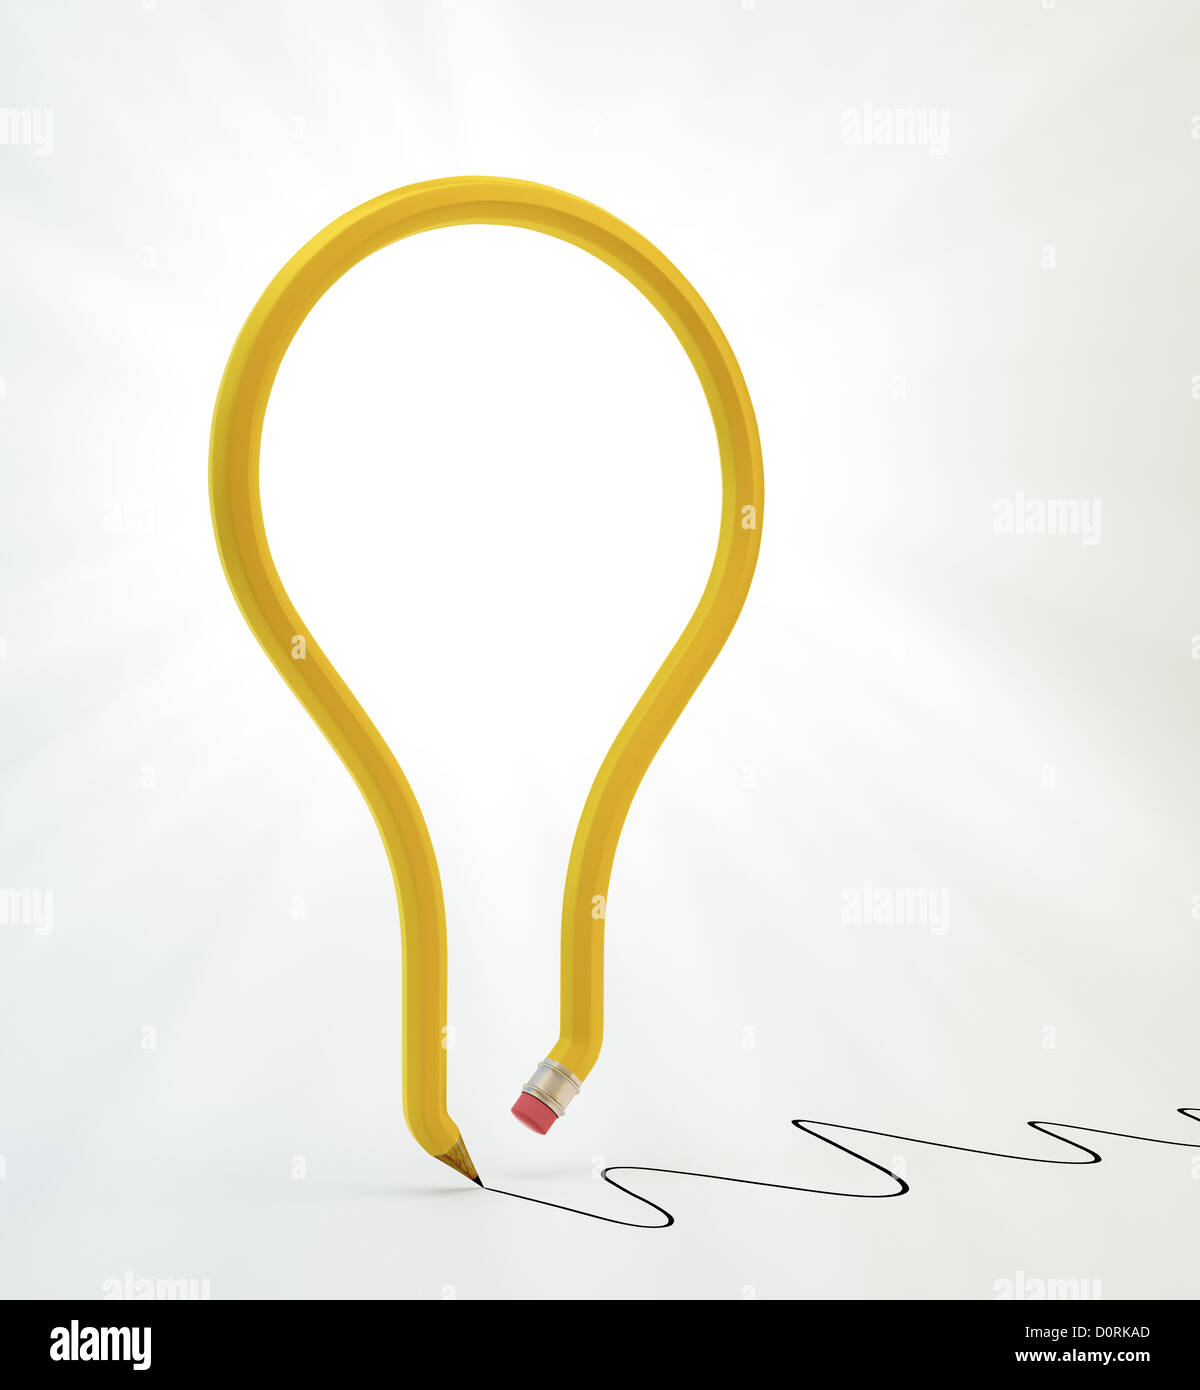 light bulb pencil - Stock Image